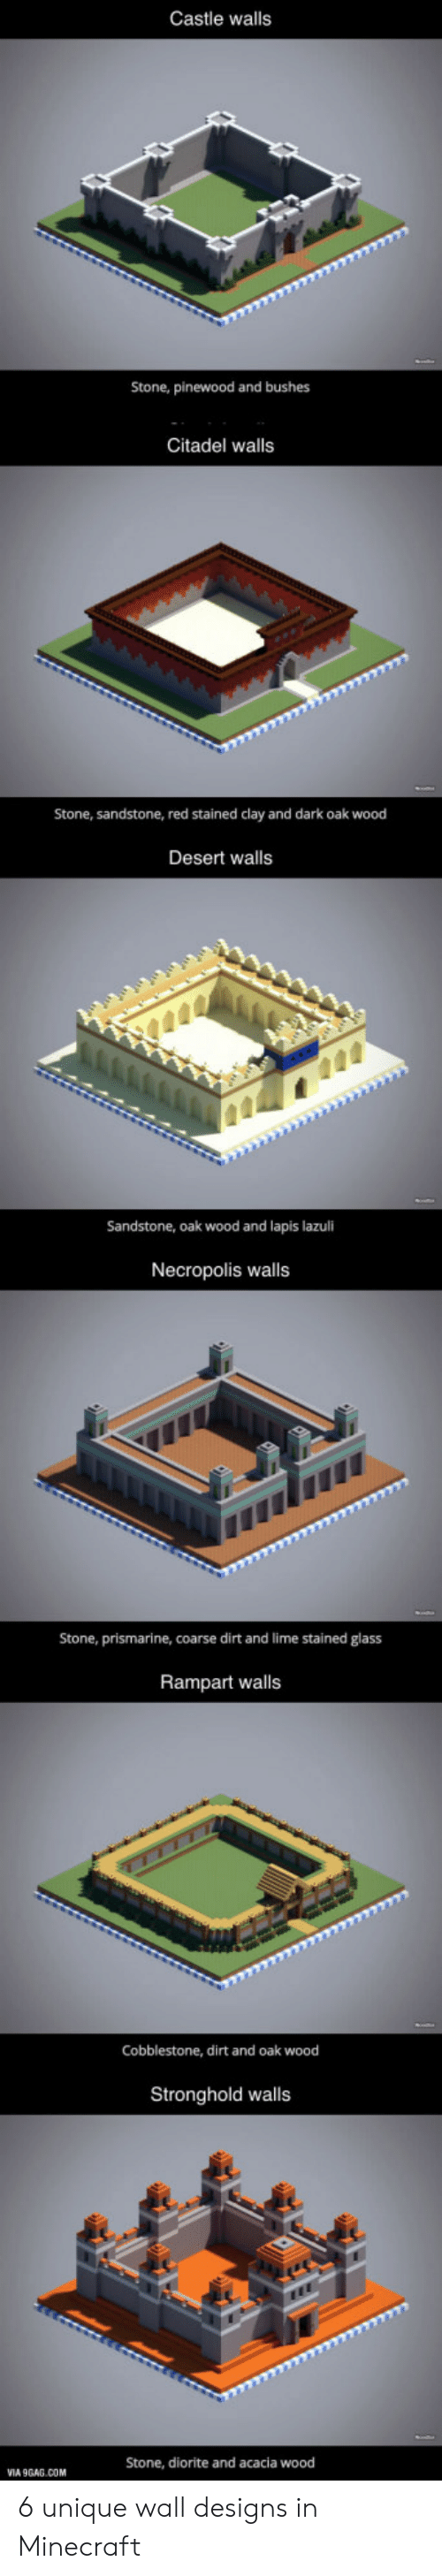 9gag, Minecraft, and Castle: Castle walls  Stone, pinewood and bushes  Citadel walls  Stone, sandstone, red stained clay and dark oak wood  Desert walls  Sandstone, oak wood and lapis lazuli  Necropolis walls  Stone, prismarine, coarse dirt and lime stained glass  Rampart walls  Cobblestone, dirt and oak wood  Stronghold walls  Stone, diorite and acacia wood  A 9GAG.COM 6 unique wall designs in Minecraft